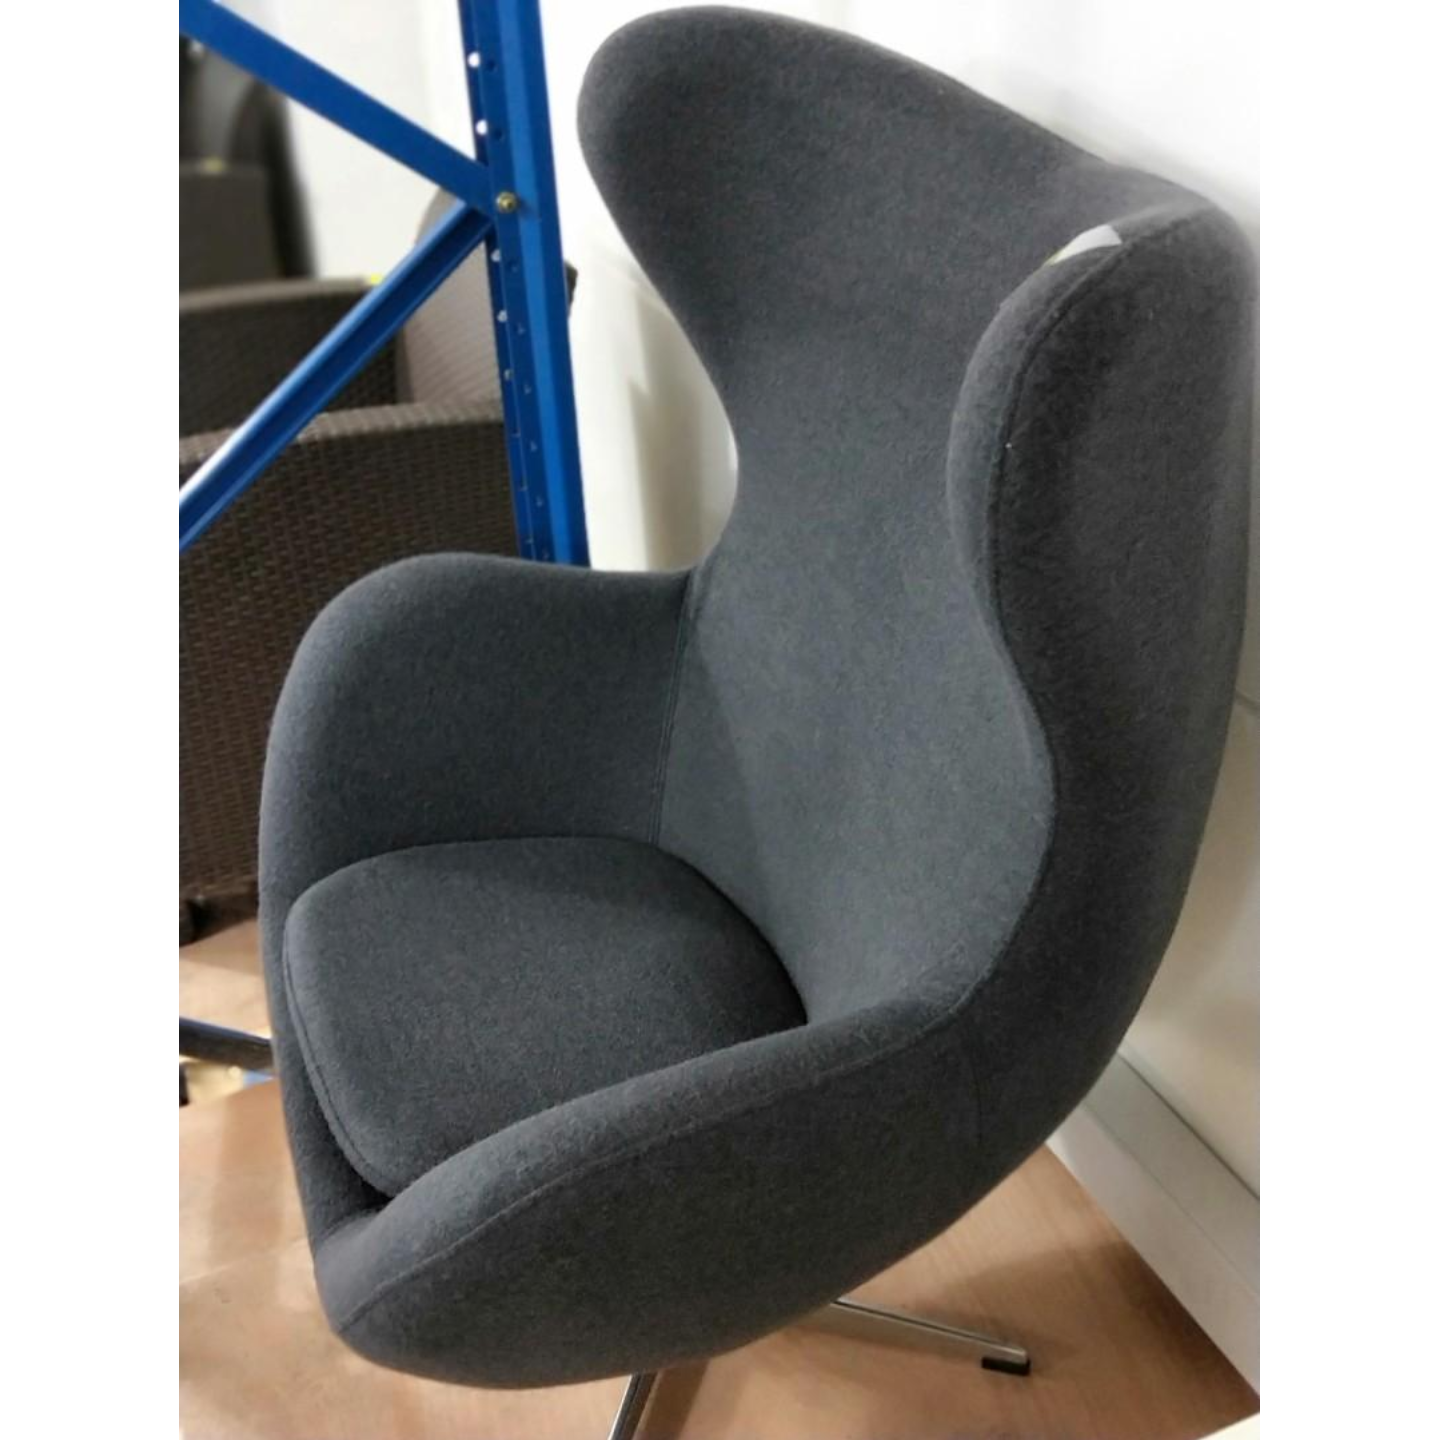 PROMETHEUS Designer Replica Egg Chair in CHARCOAL